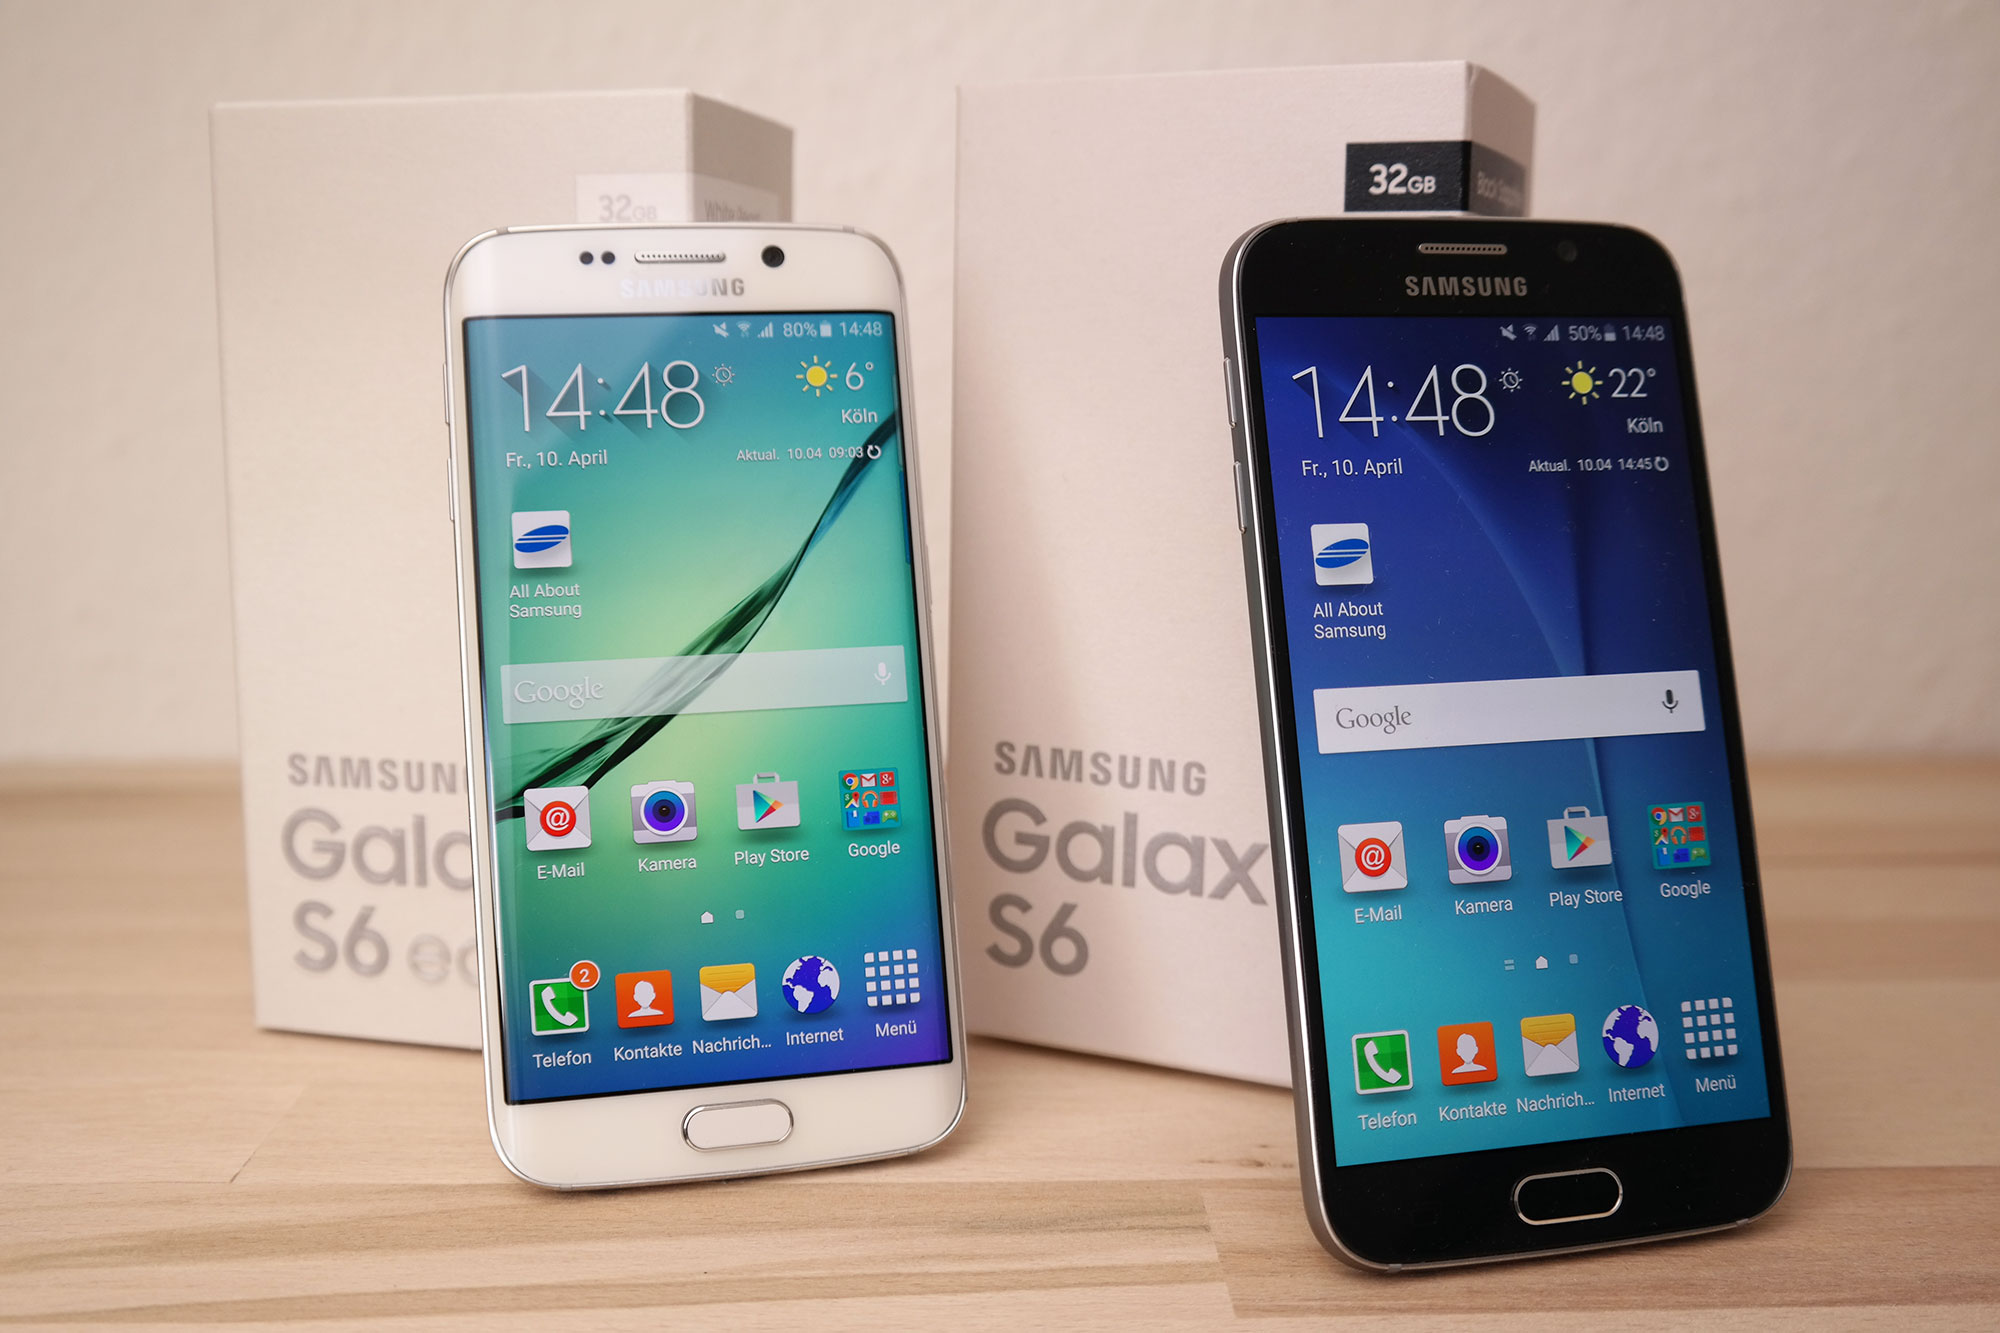 samsung galaxy s6 und galaxy s6 edge testbericht all. Black Bedroom Furniture Sets. Home Design Ideas